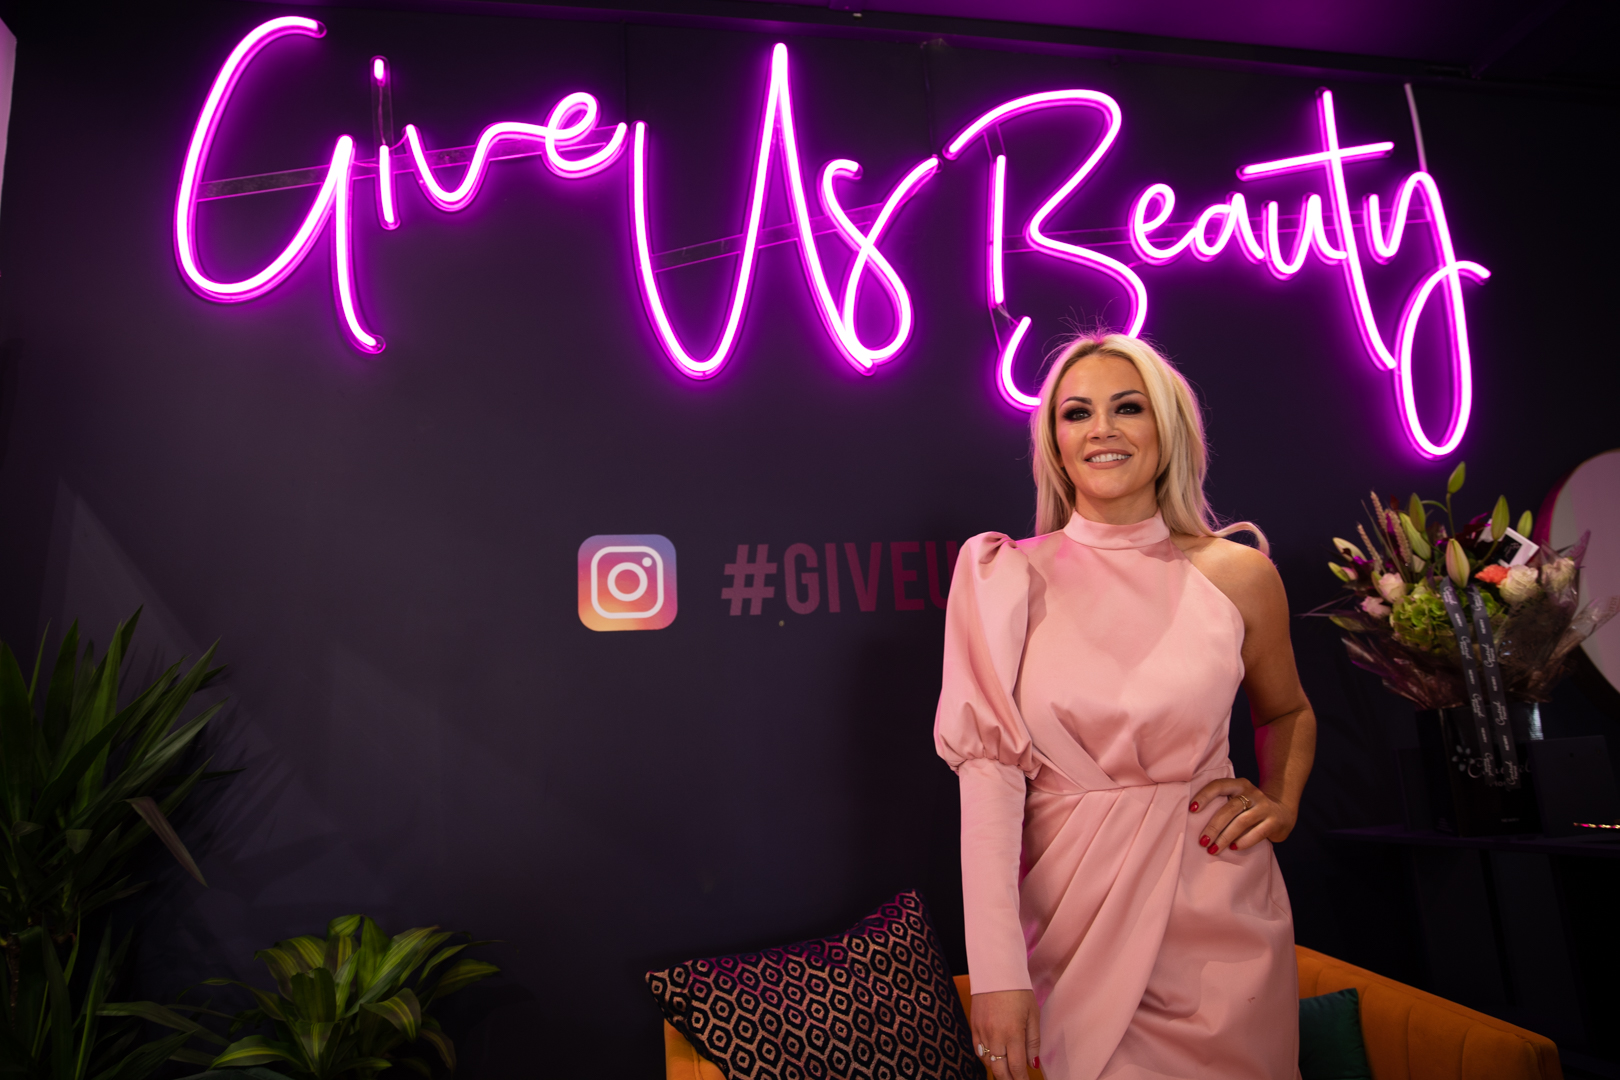 Give Us Beauty Newry store - BBC Apprentice Grainne McCoy - Newry business news - Freelance NI Copywriter Paul Malone, Tall Paul Marketing